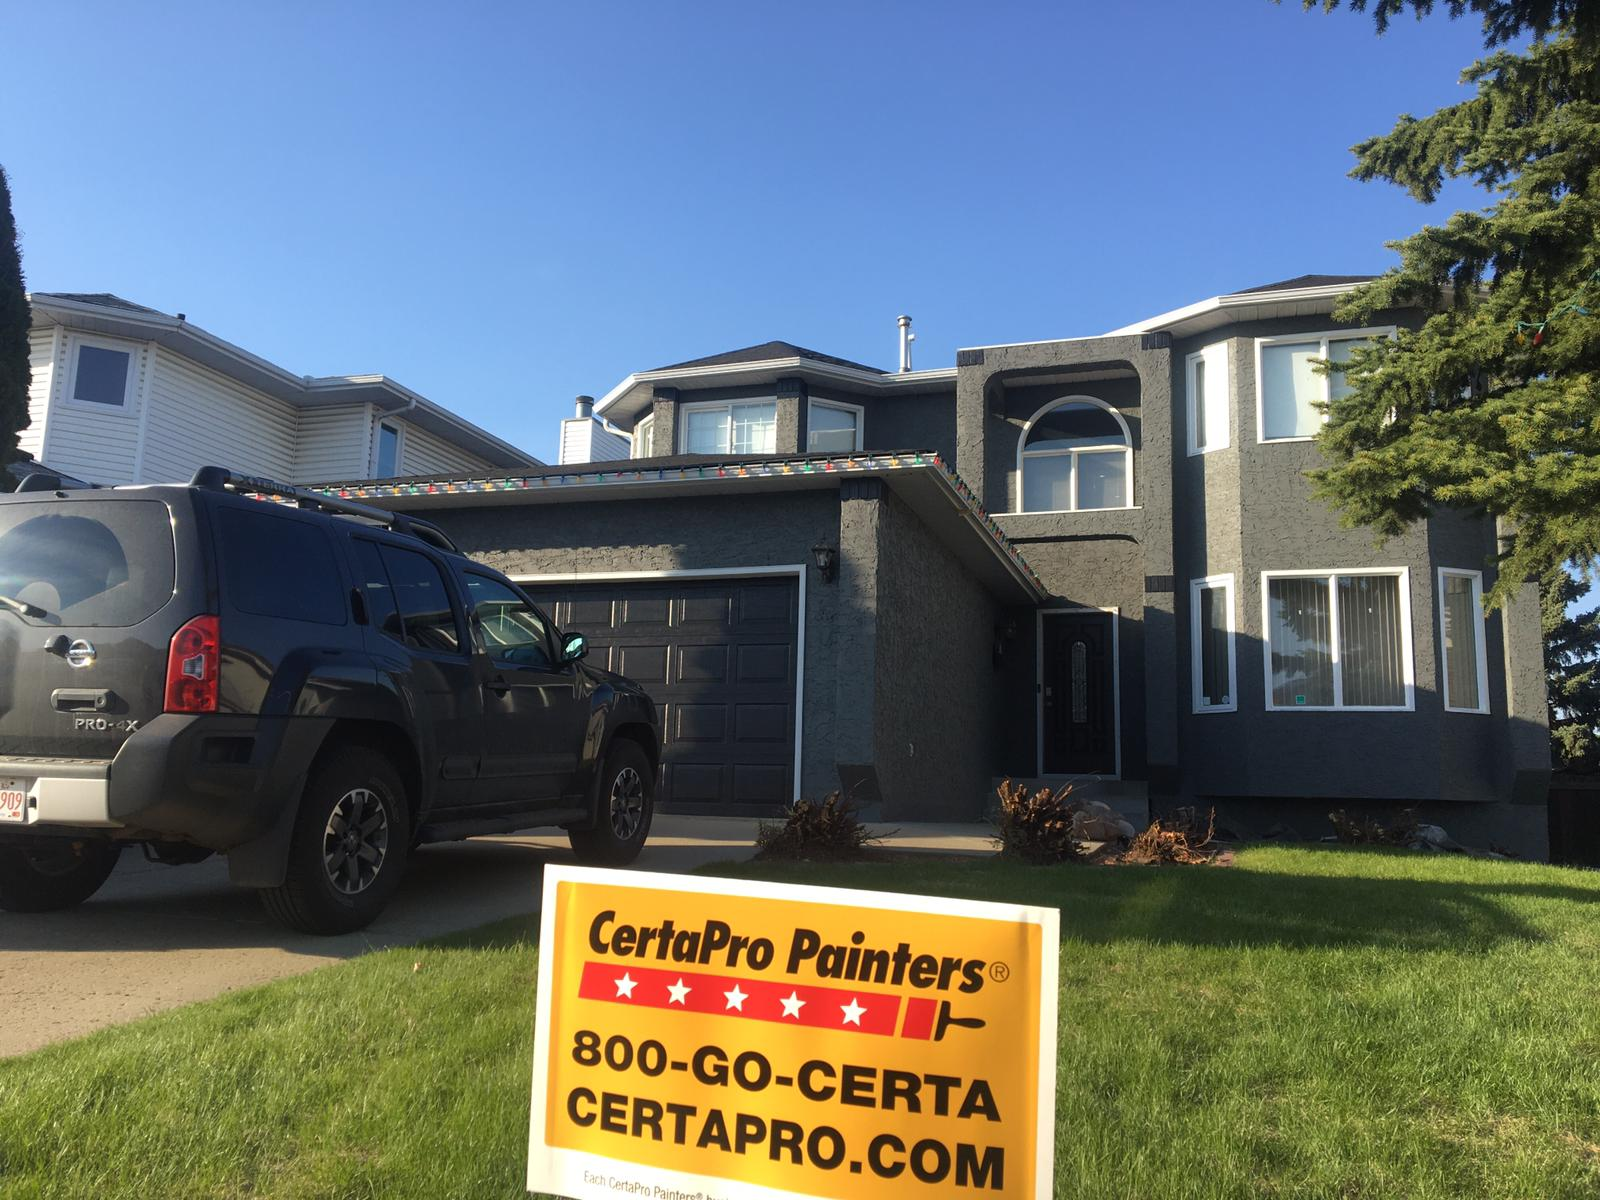 Professional Exterior Residential Painting Service Company Edmonton, AB, CA